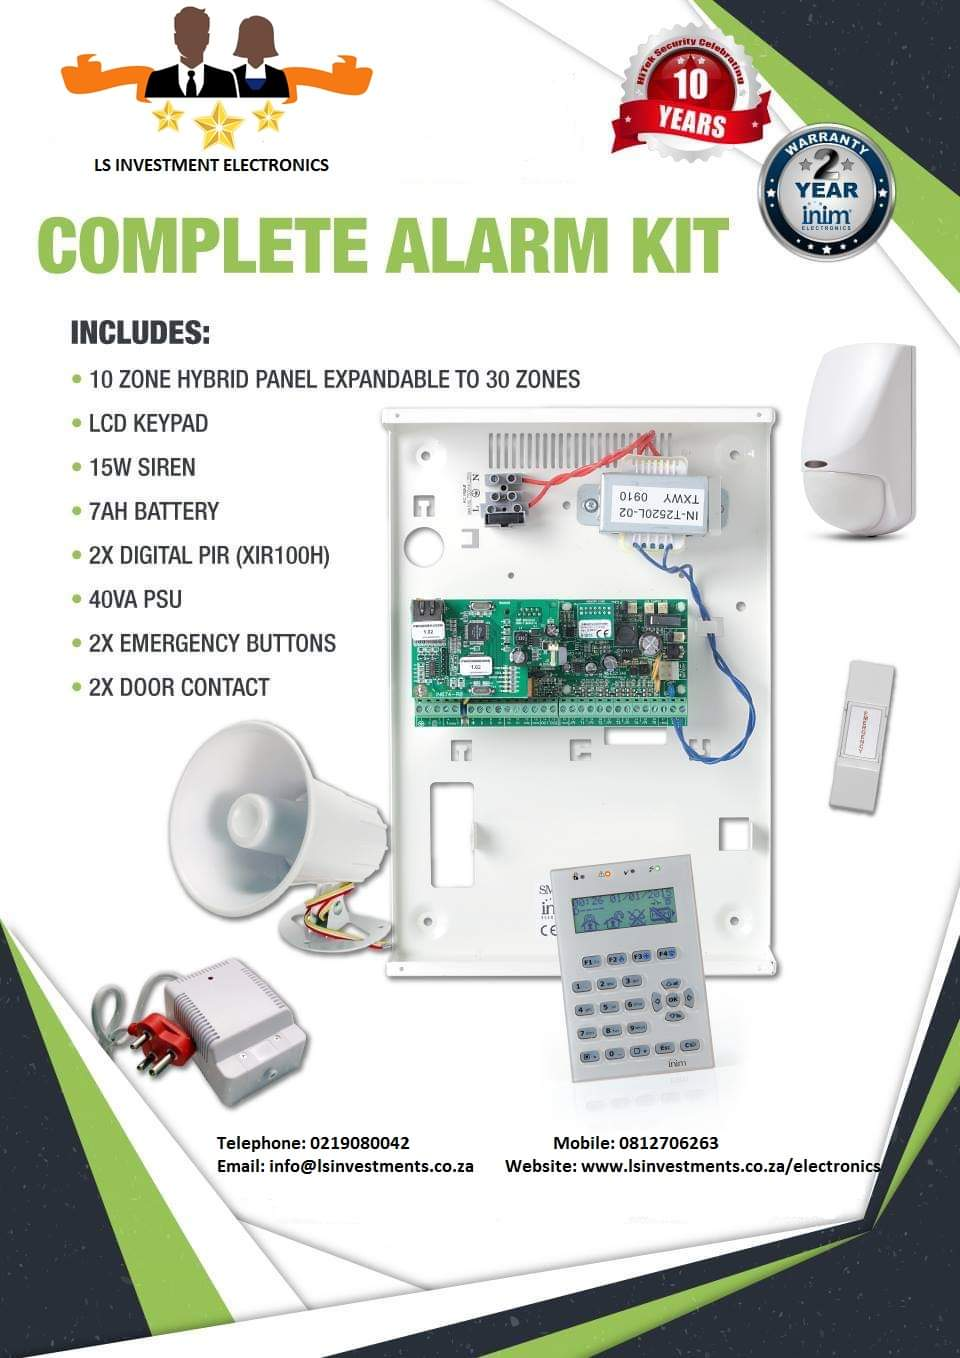 SECURITY SYSTEMS CCTV ALARM INTERCOM DRIVEWAY GATE & GARAGE AND HOME AUTOMATION